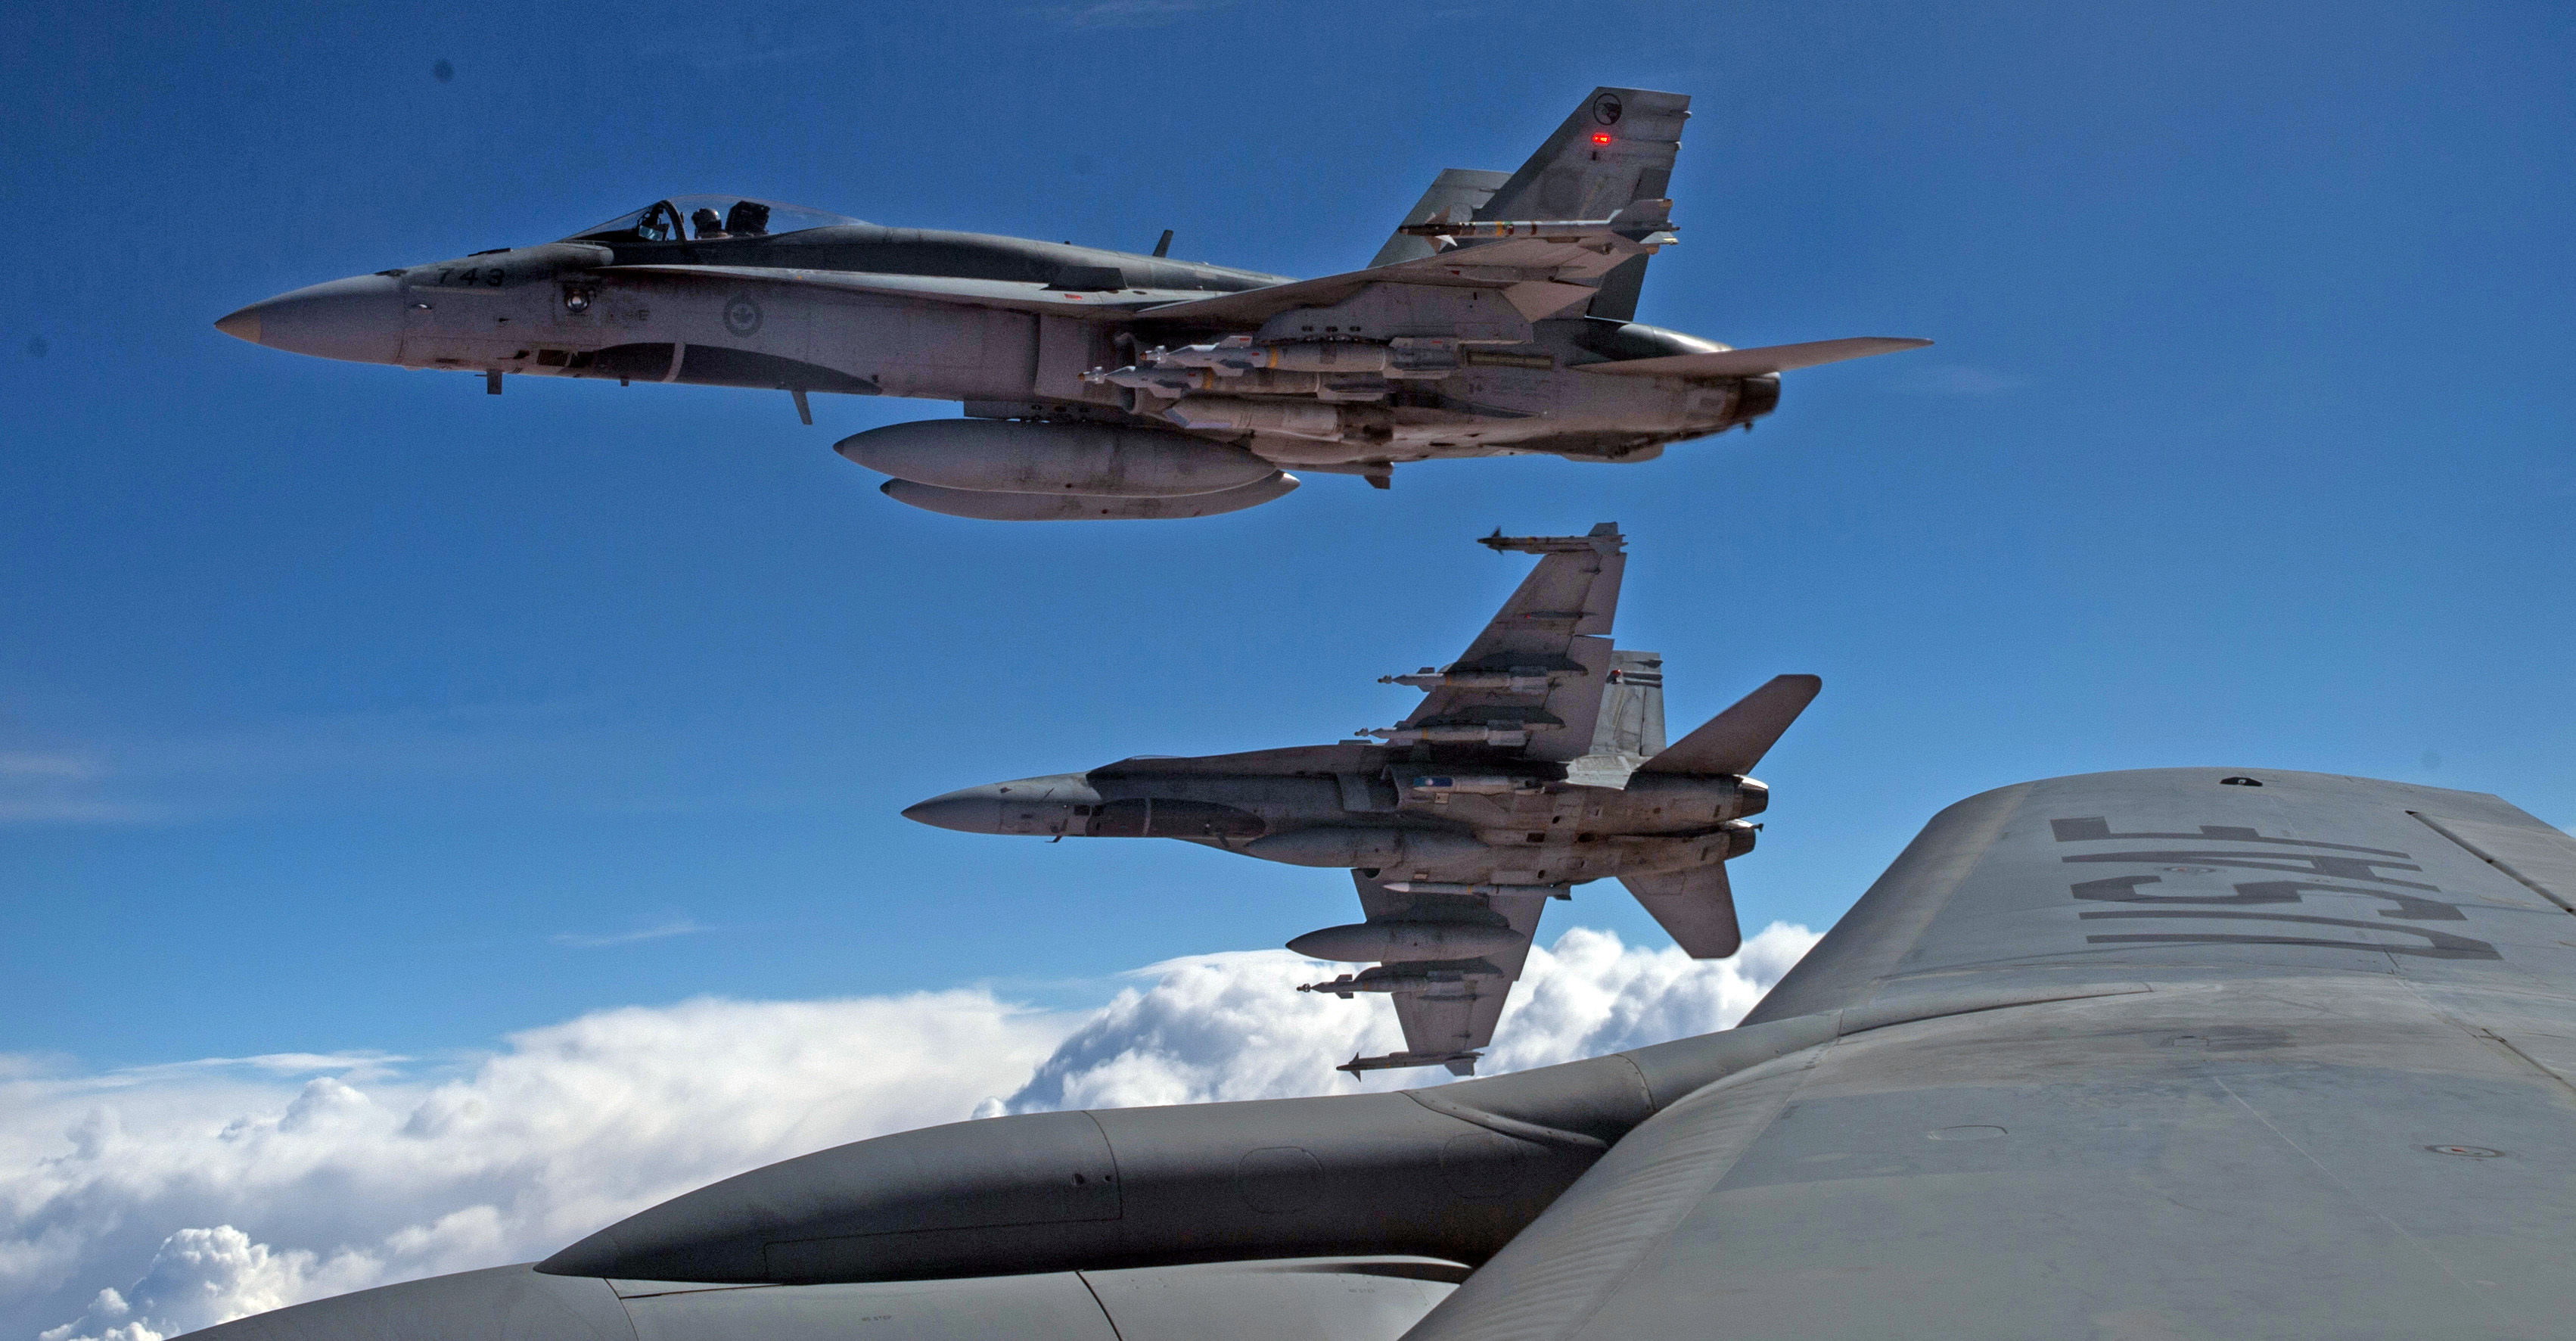 Un KC-135 Stratotanker des États-Unis, affecté à 340th Expeditionary Air Refueling Squadron, ravitaille des CF-188 Hornet de l'Aviation royale canadienne le 30 Octobre 2014. PHOTO: United States Air Force